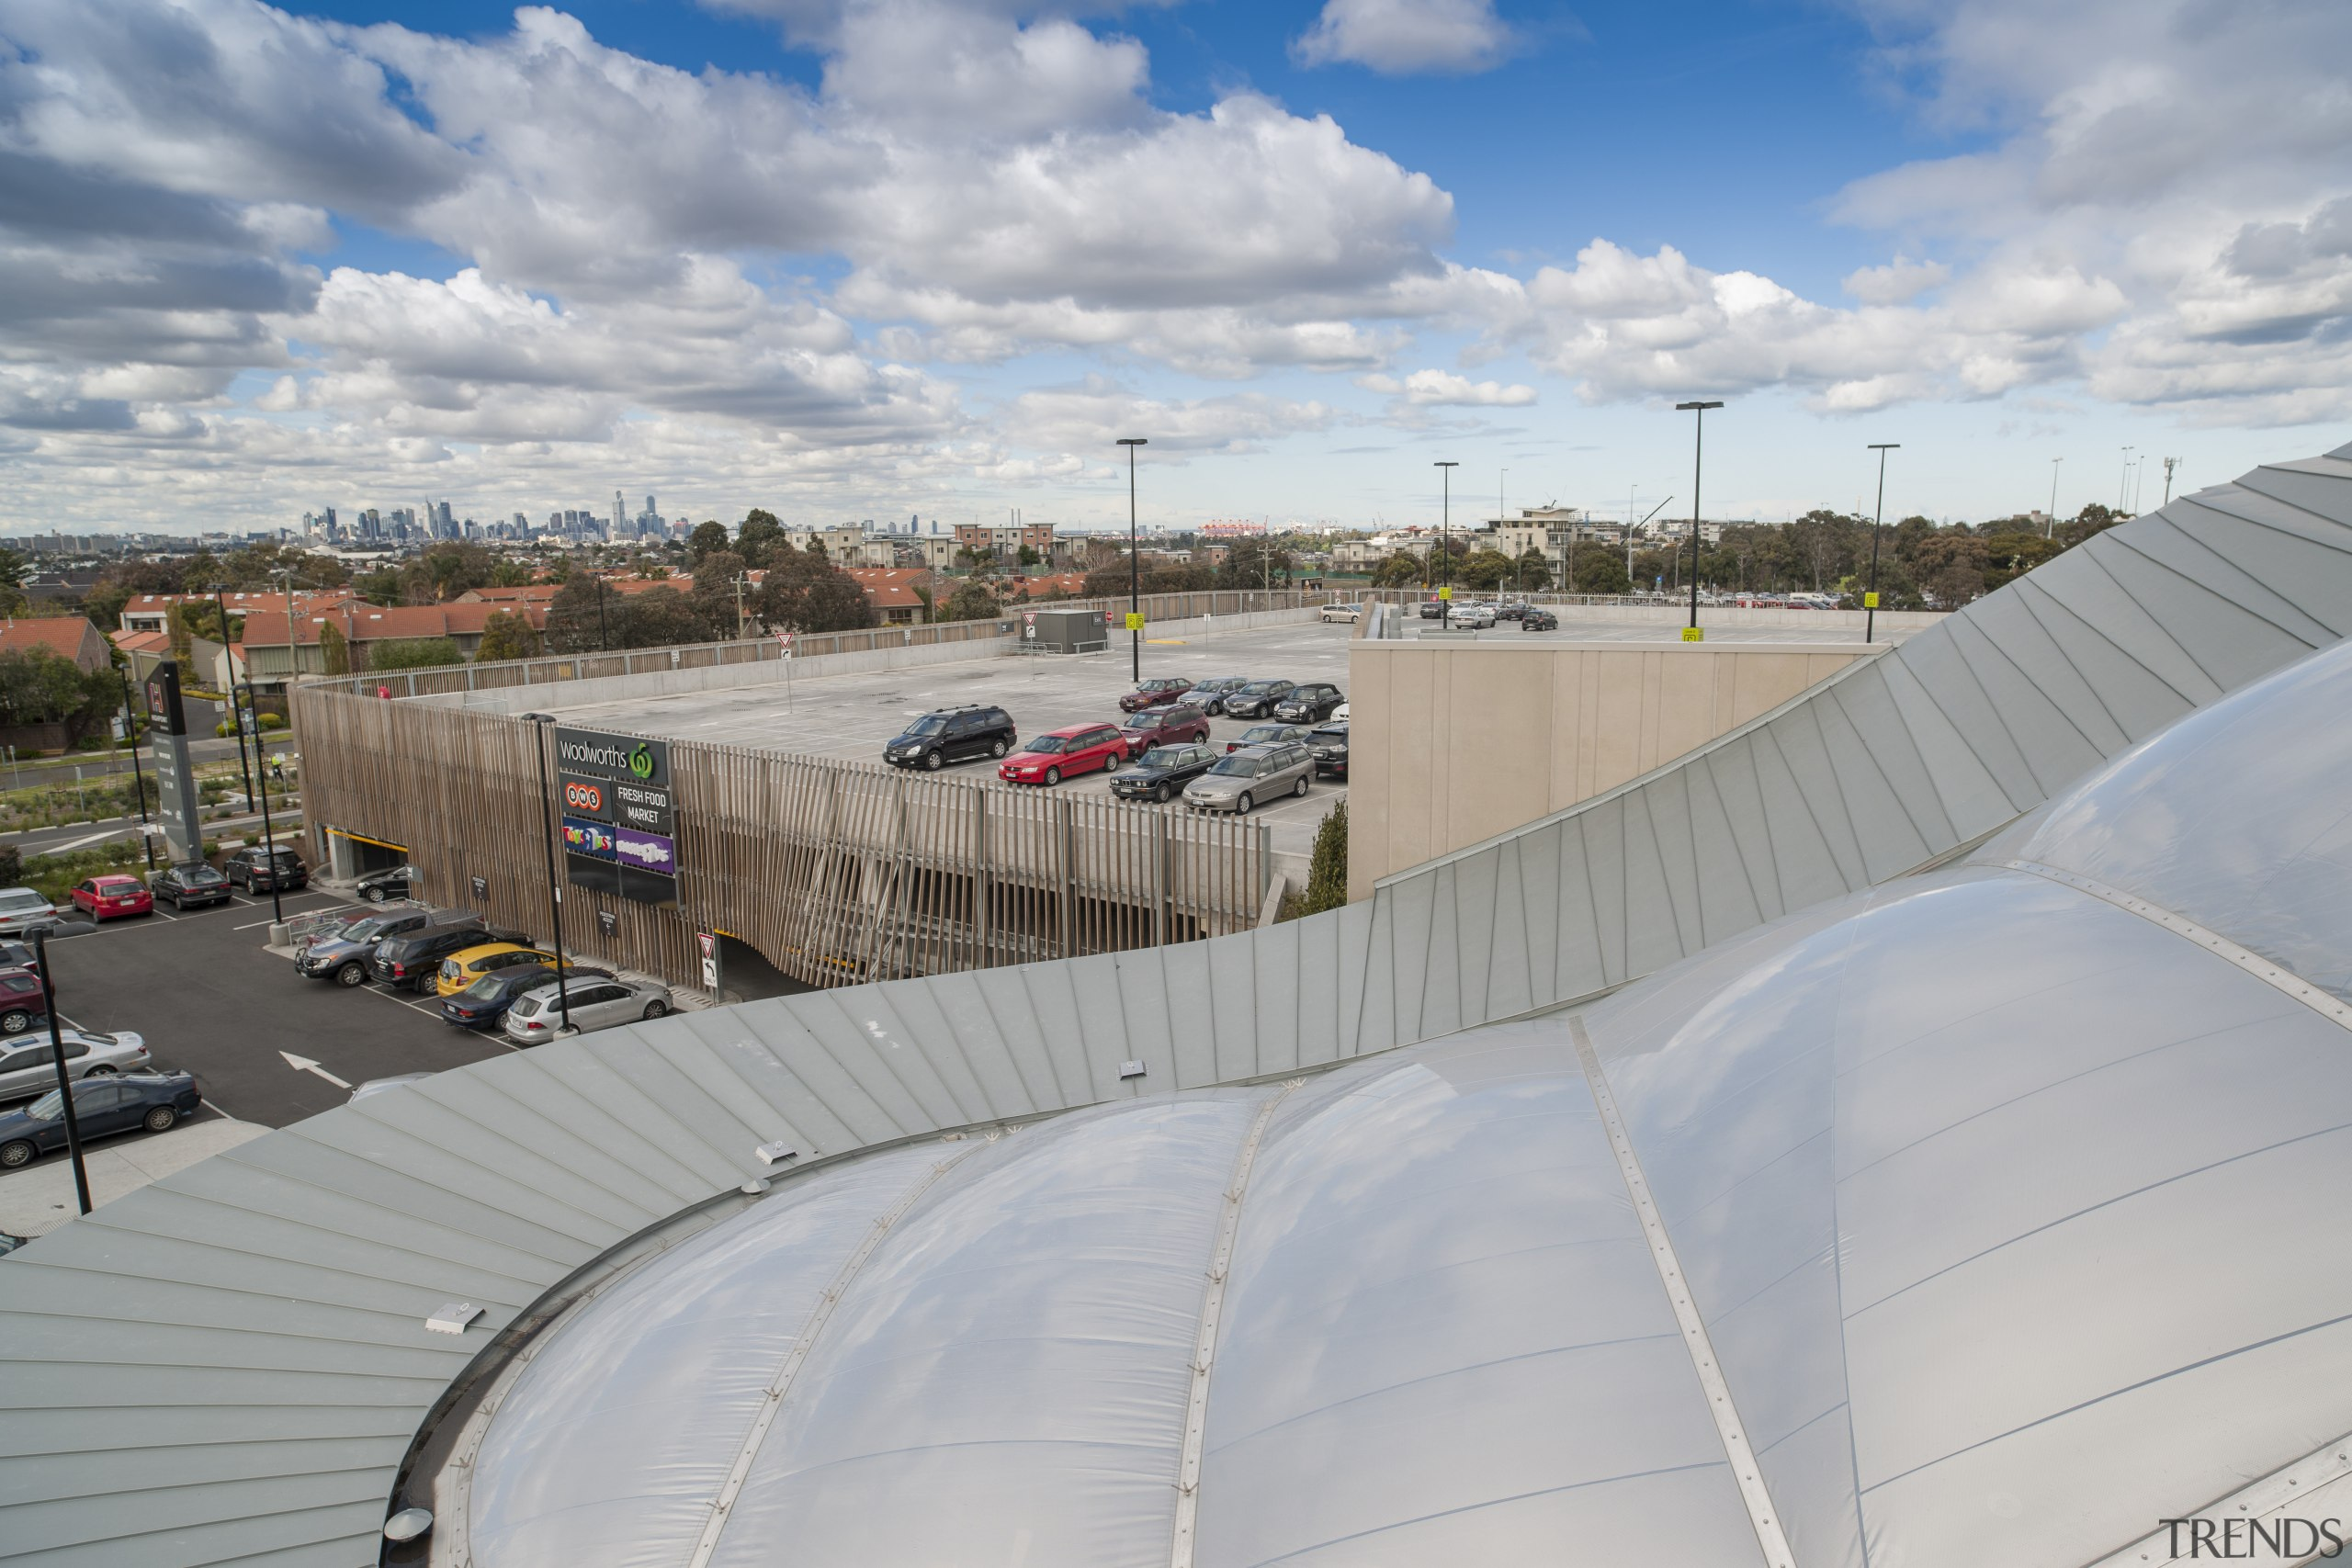 The roof was chosen in part for its atmosphere of earth, real estate, roof, sky, structure, gray